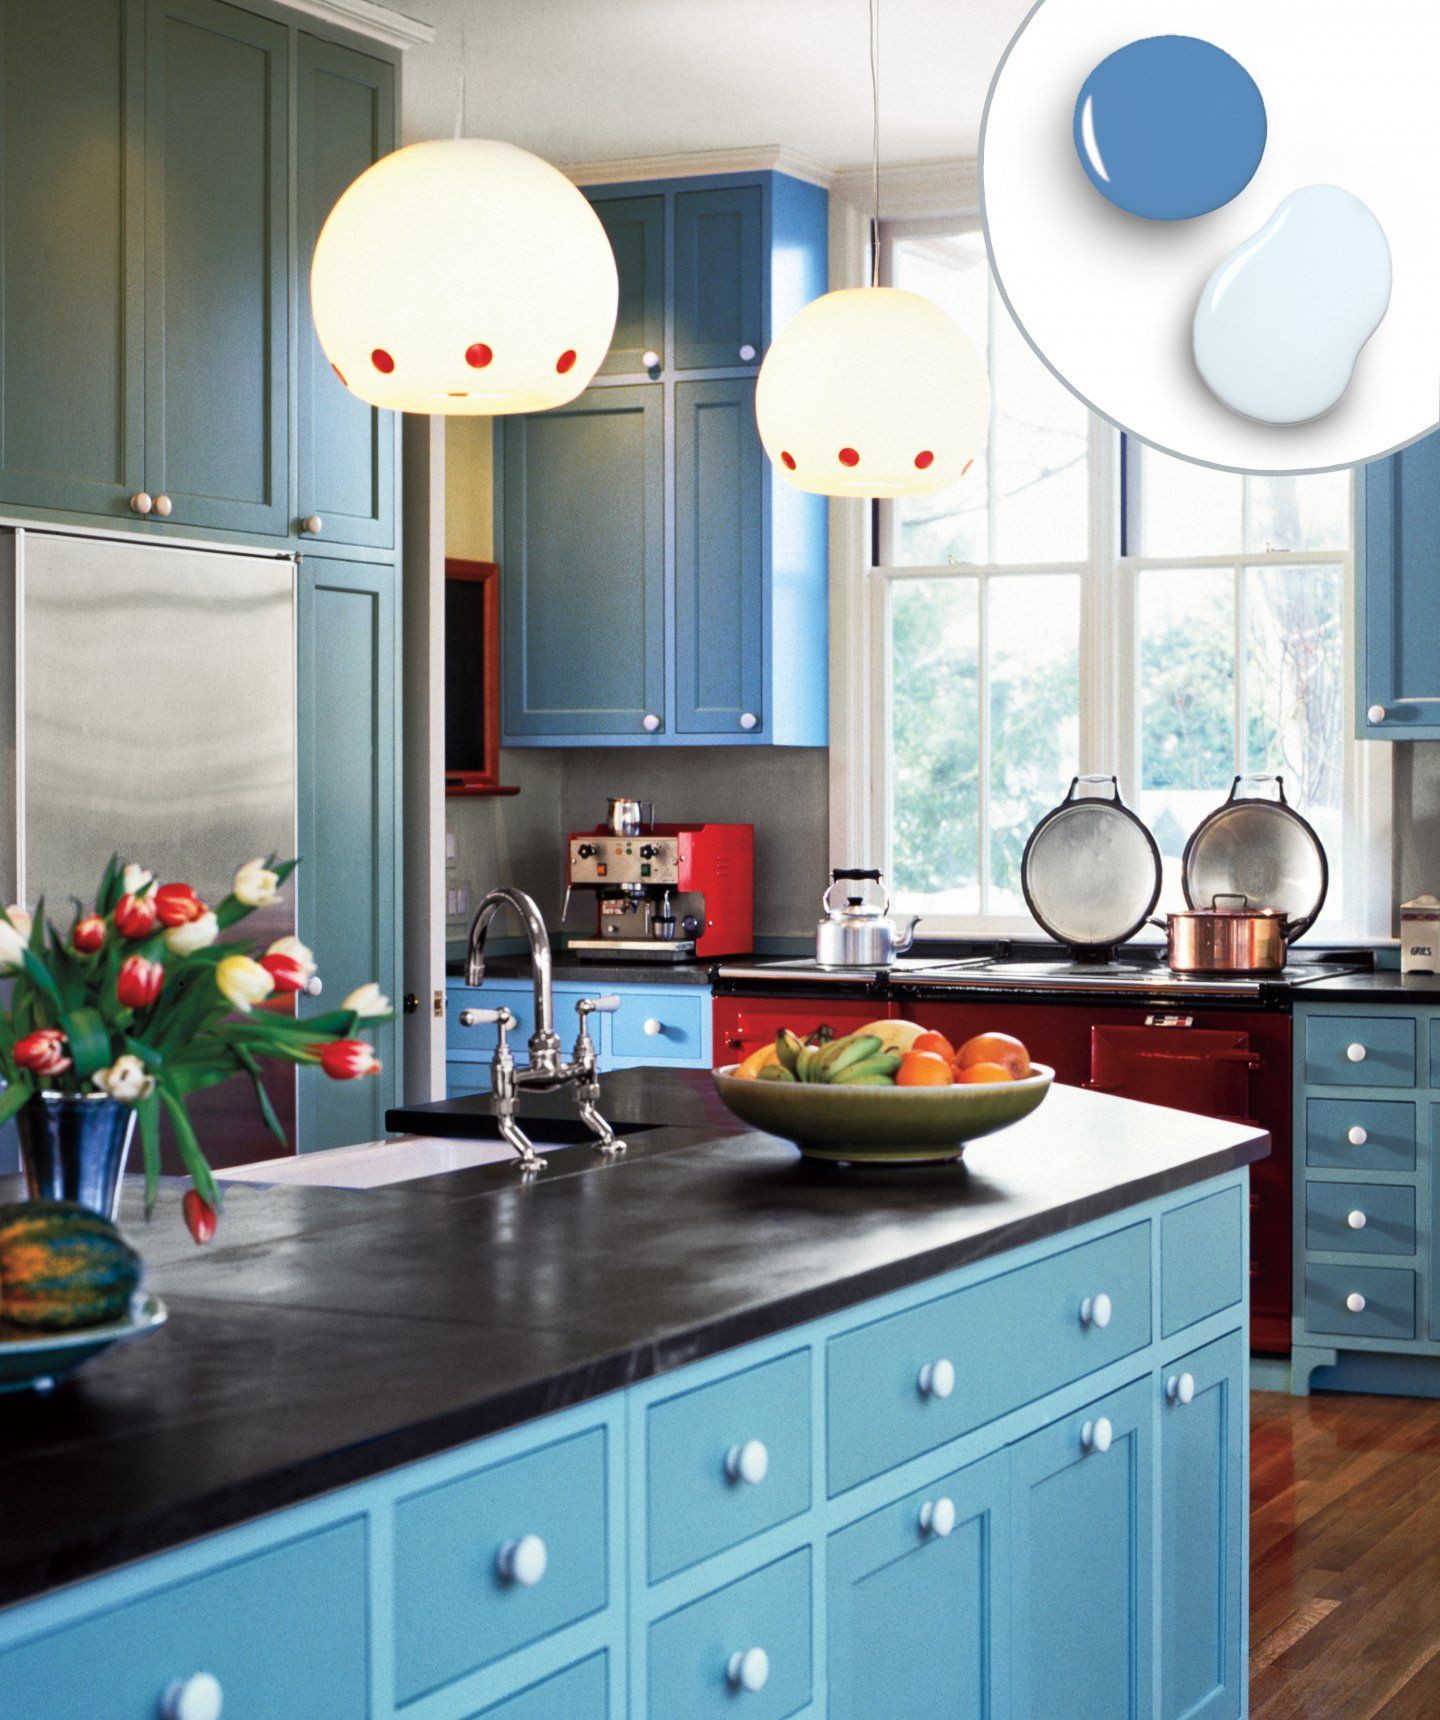 12 Kitchen Cabinet Color Combos That Really Cook | Simple kitchen ...